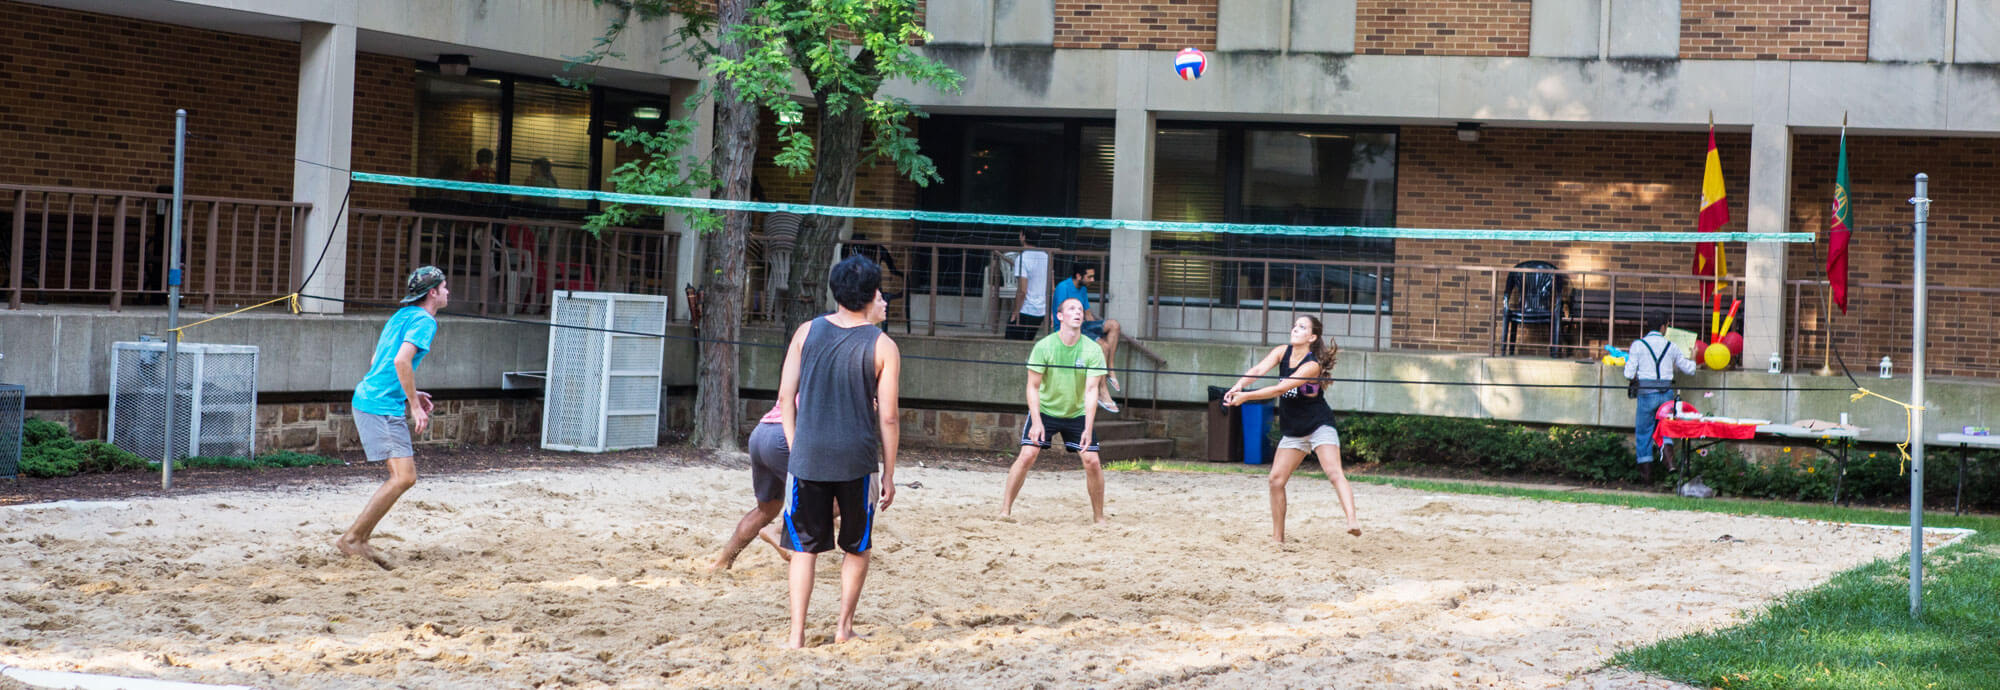 LU students playing sand volleyball on campus